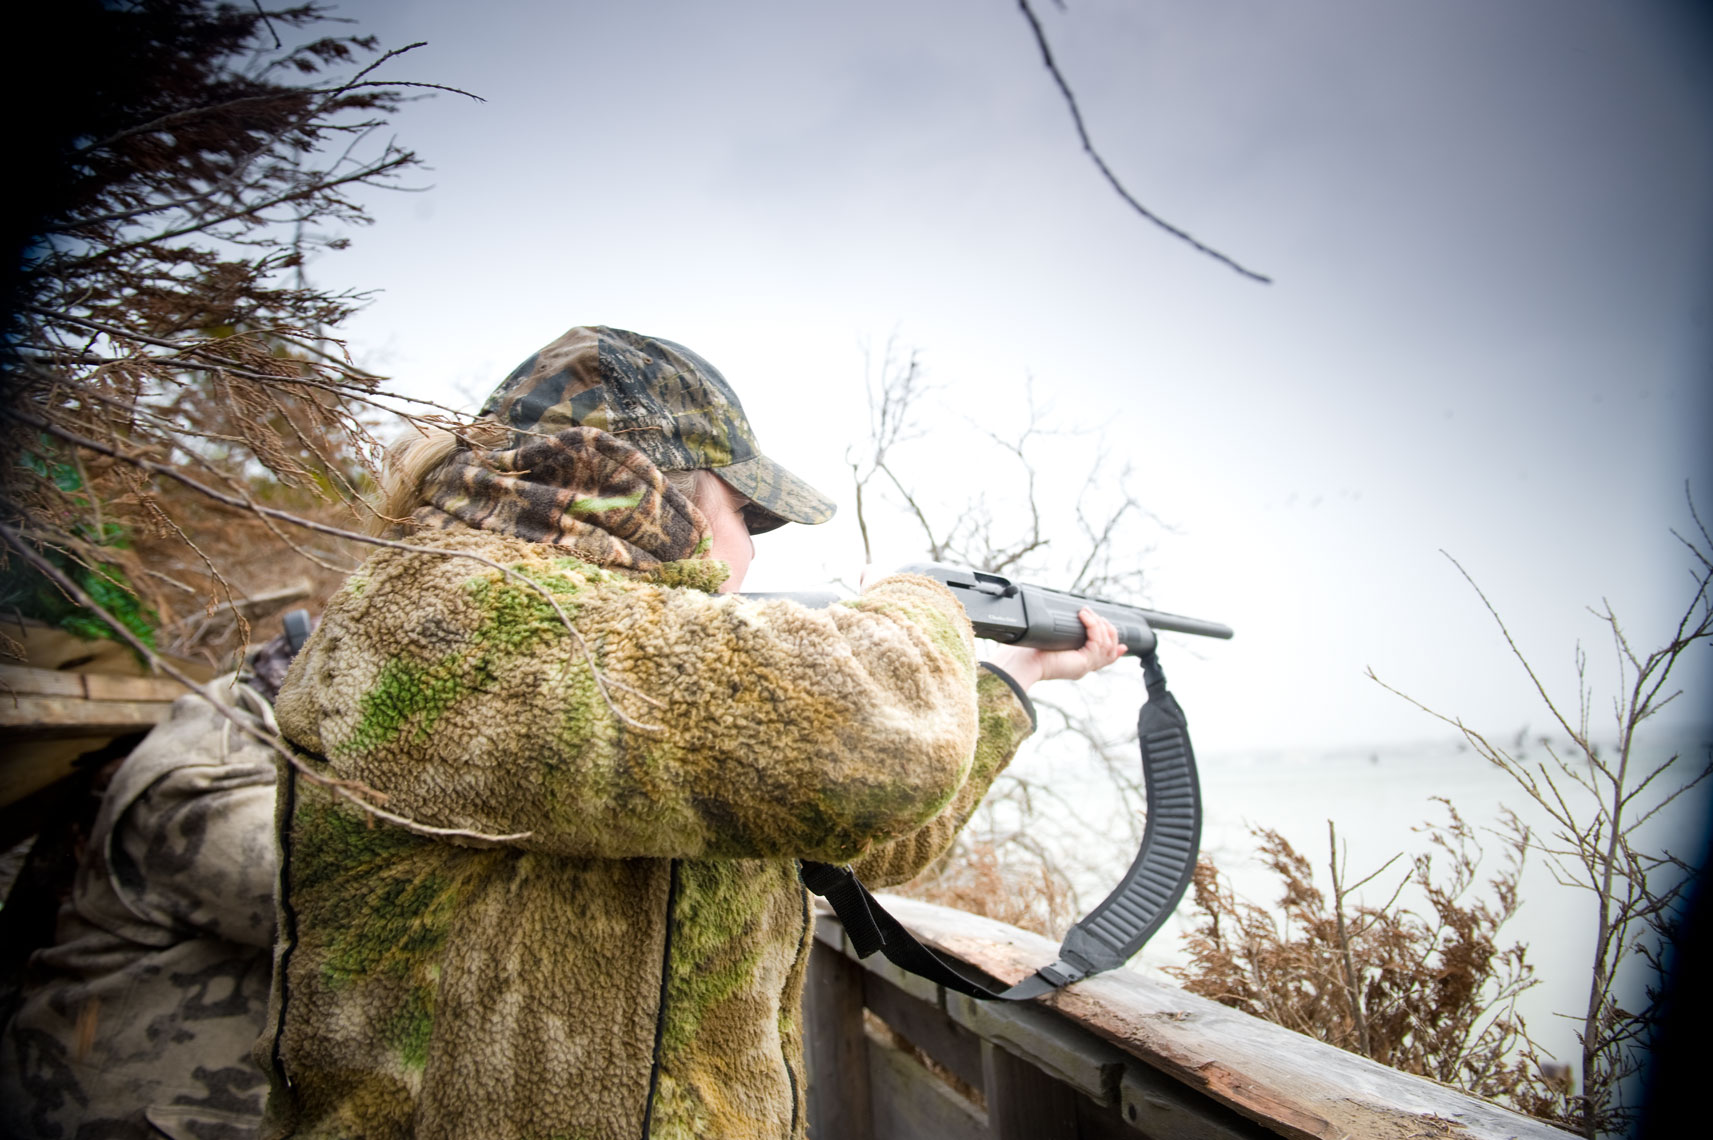 Mike Morgan Photography, 2012Hunting for waterfowl on the Eastern Shore of Maryland, by Maryland photographer Mike Morgan.